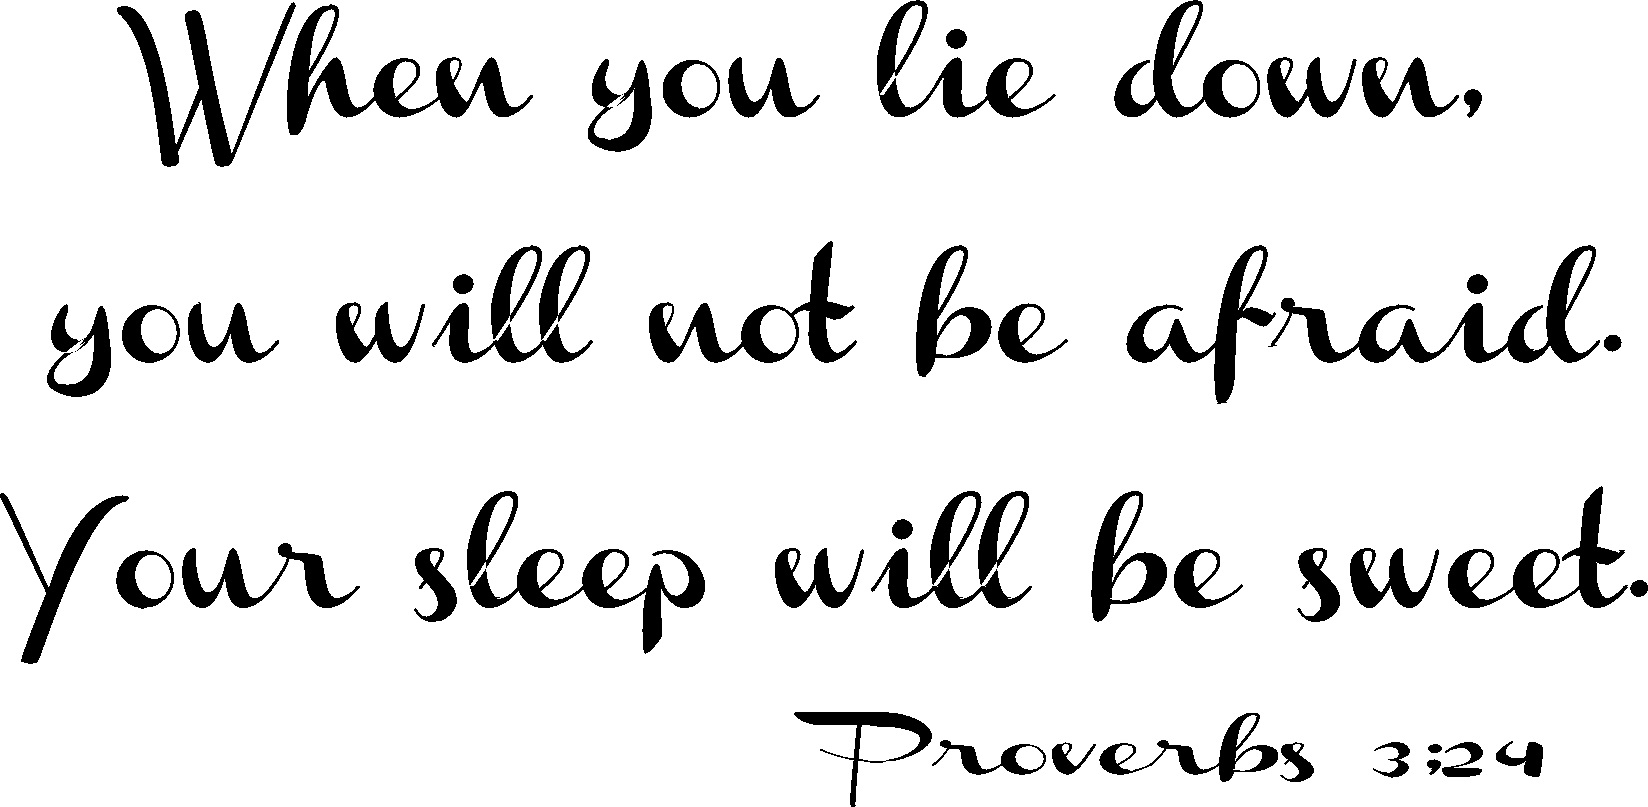 Inspirational Wall Quote ~ Proverbs 3:24